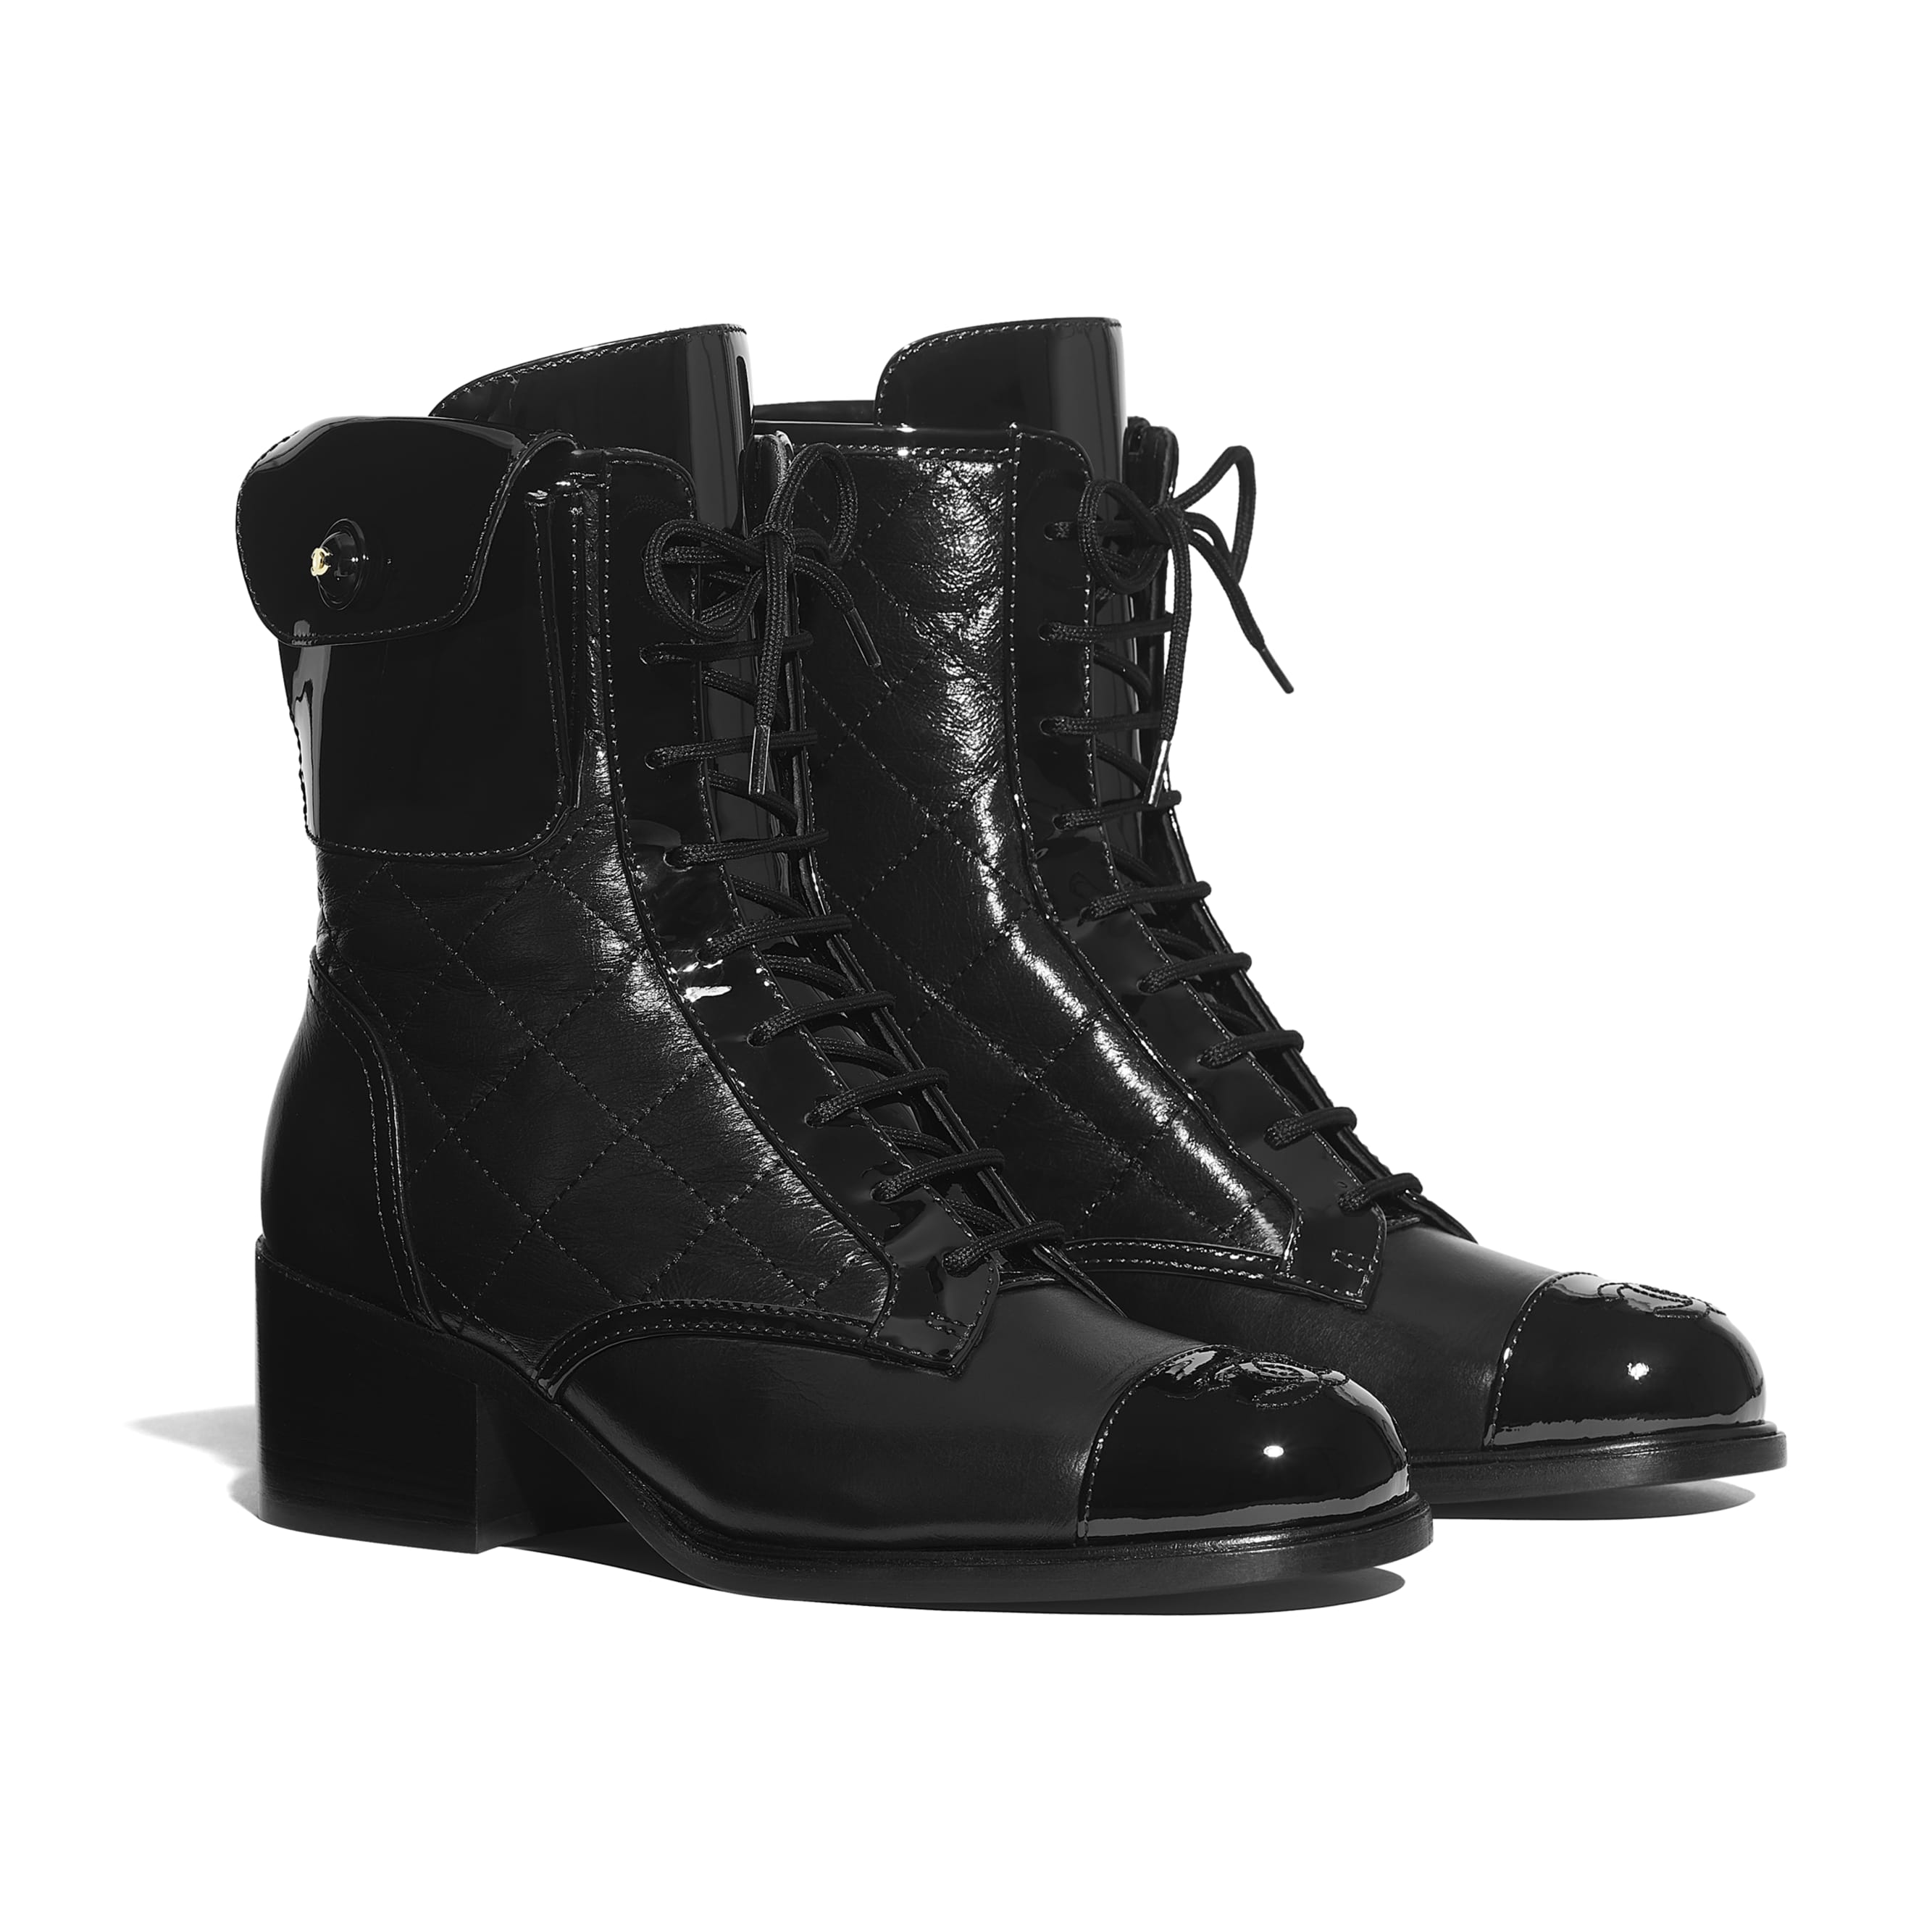 Ankle Boots - Black - Patent Calfskin & Crackled Calfskin - Alternative view - see standard sized version